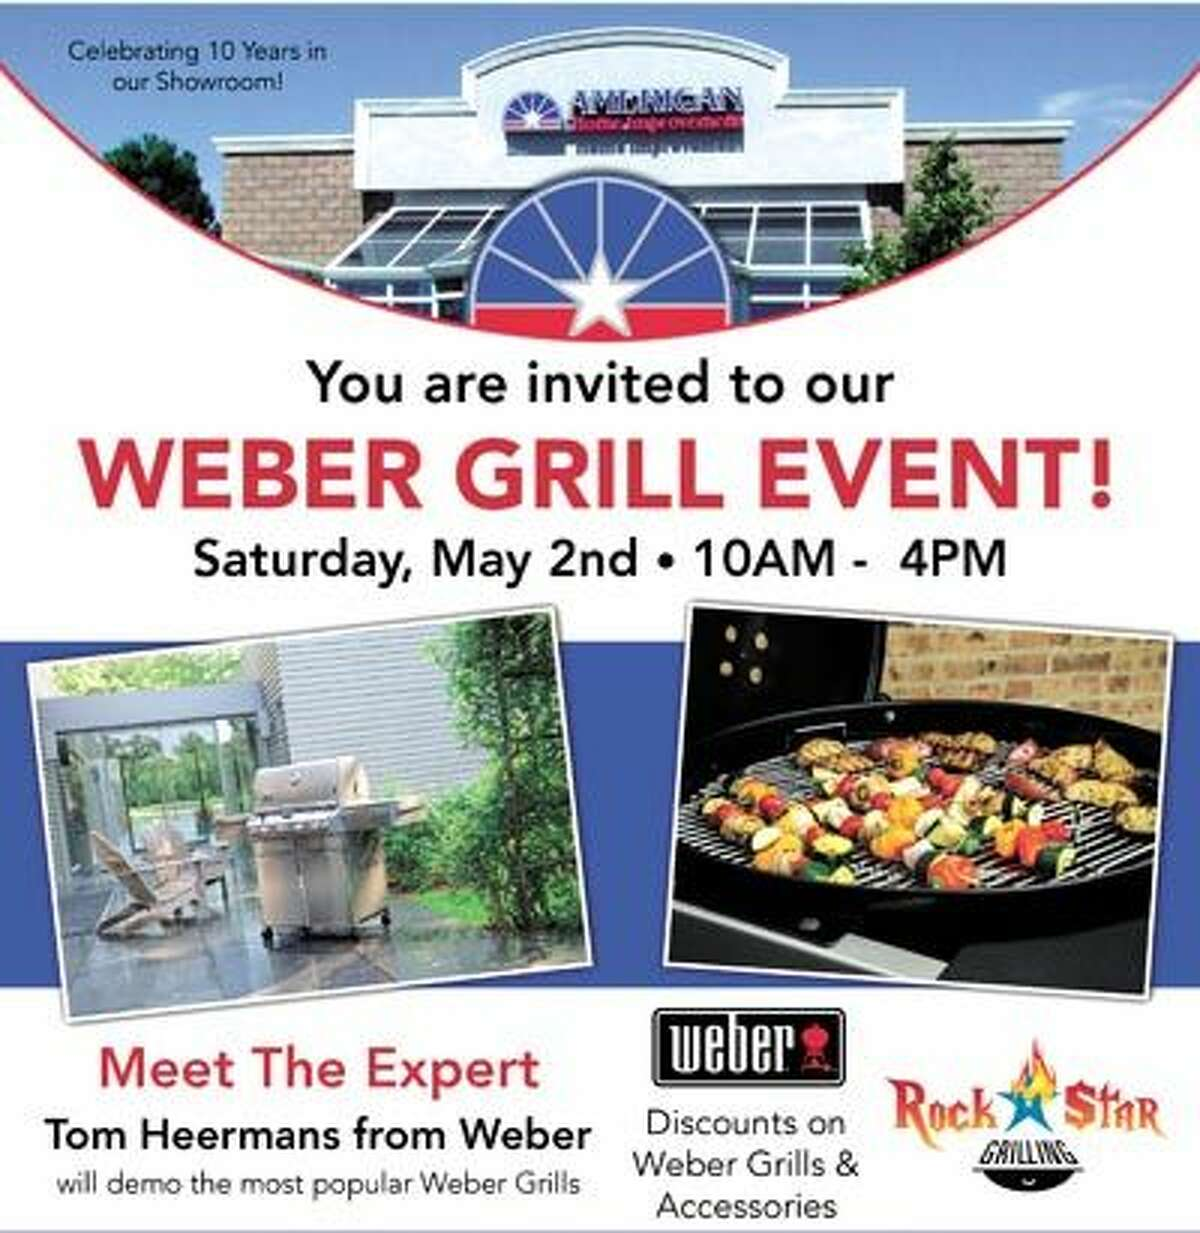 American Home Improvement invites everyone to their Weber Grill Event this Saturday, May 2, from 10-4! Weber's grilling expert, Tom Heermans, will be on hand to help you grill like a pro. American Home Improvement is on Highway 191 at FM 1788, near the airport.